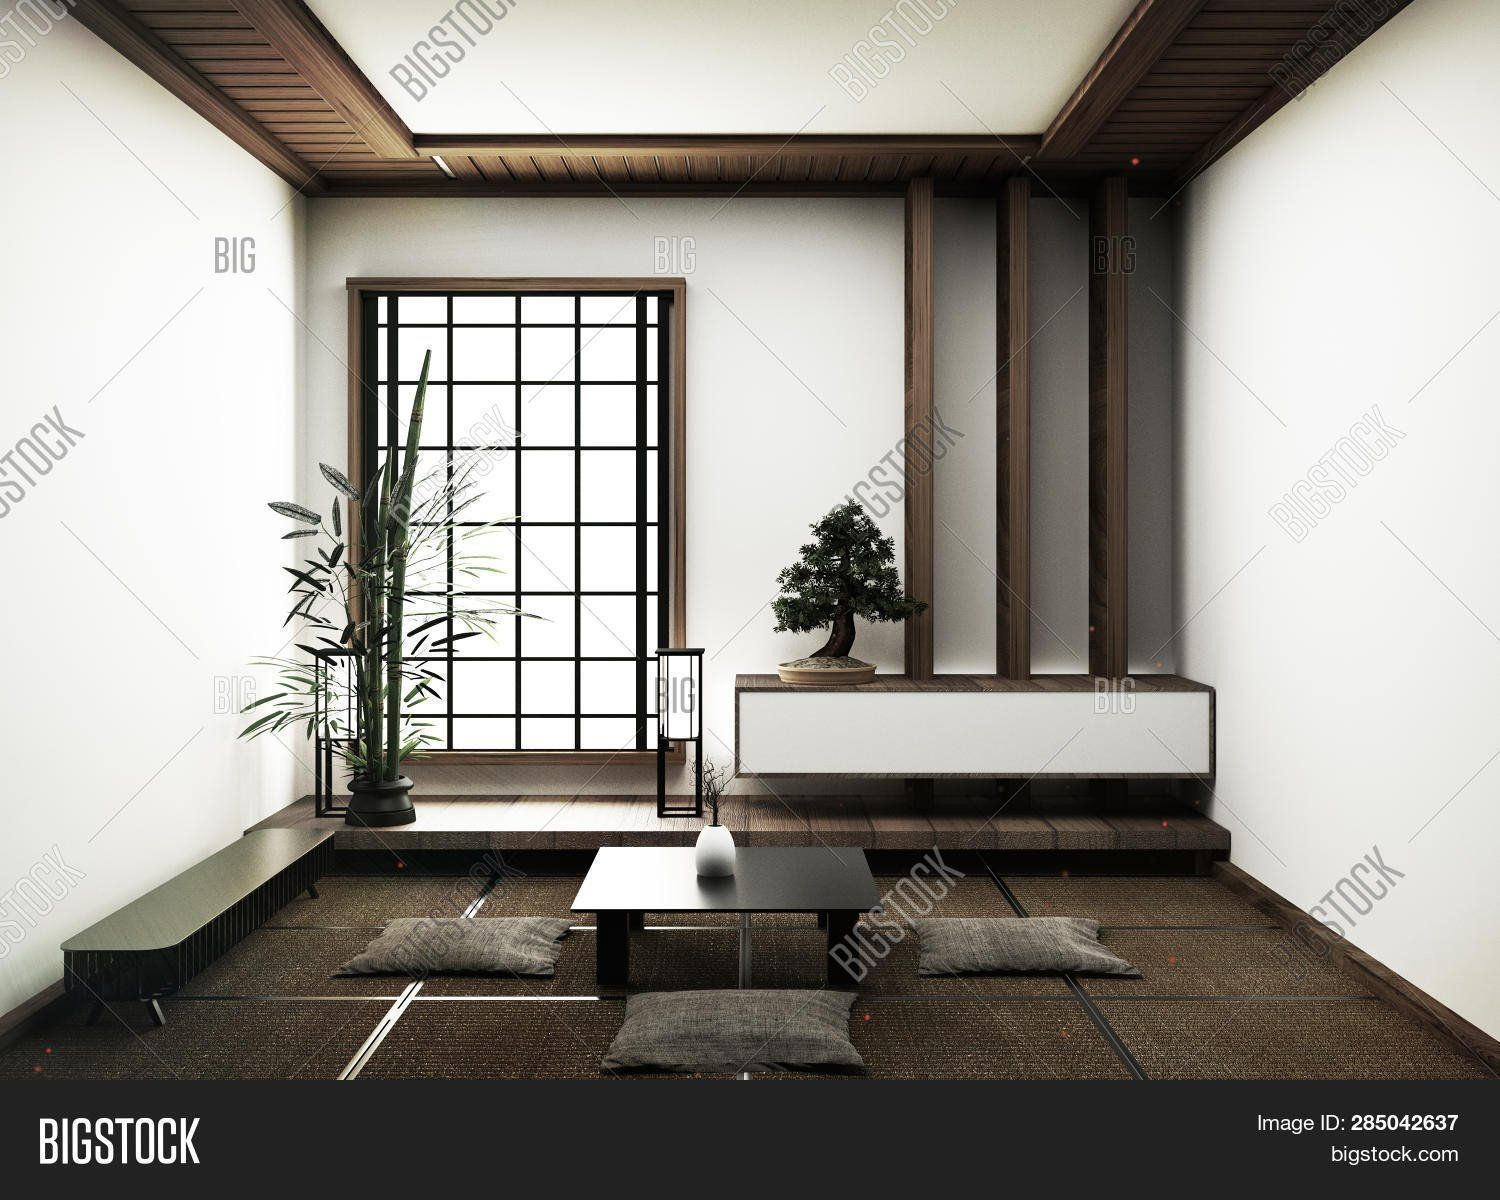 Traditional Japanese Living Room Interior Design Modern Image Free Trial In 2020 Japanese Living Rooms Modern Japanese Interior Design Modern Interior Design #traditional #japanese #living #room